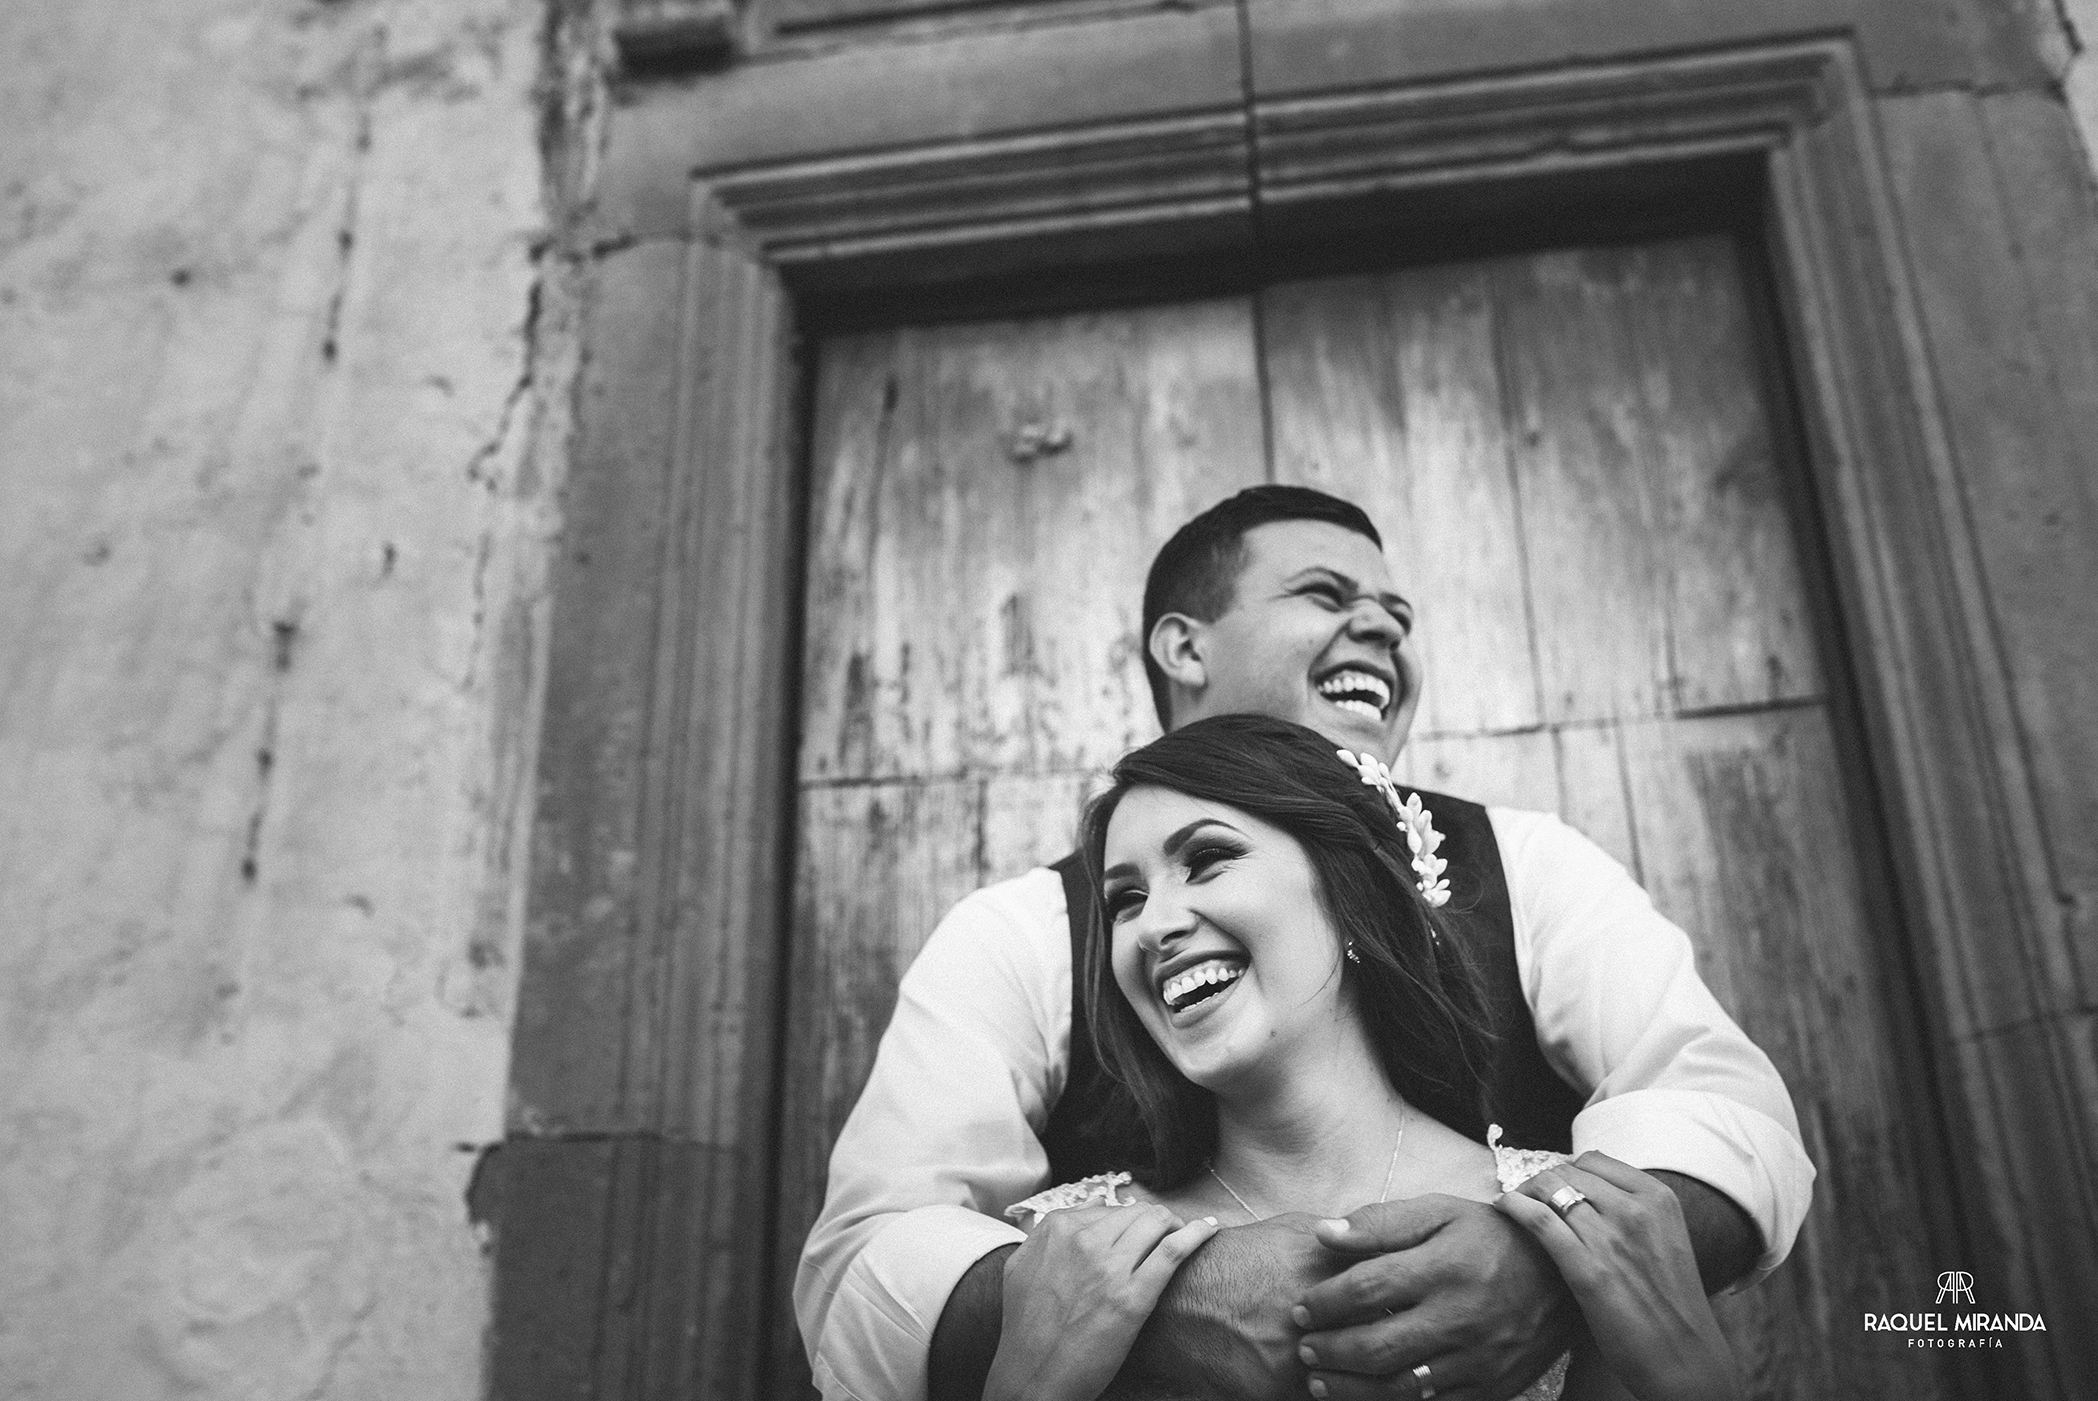 raquel miranda fotografía - trash the dress - nallely&victor-16.jpg